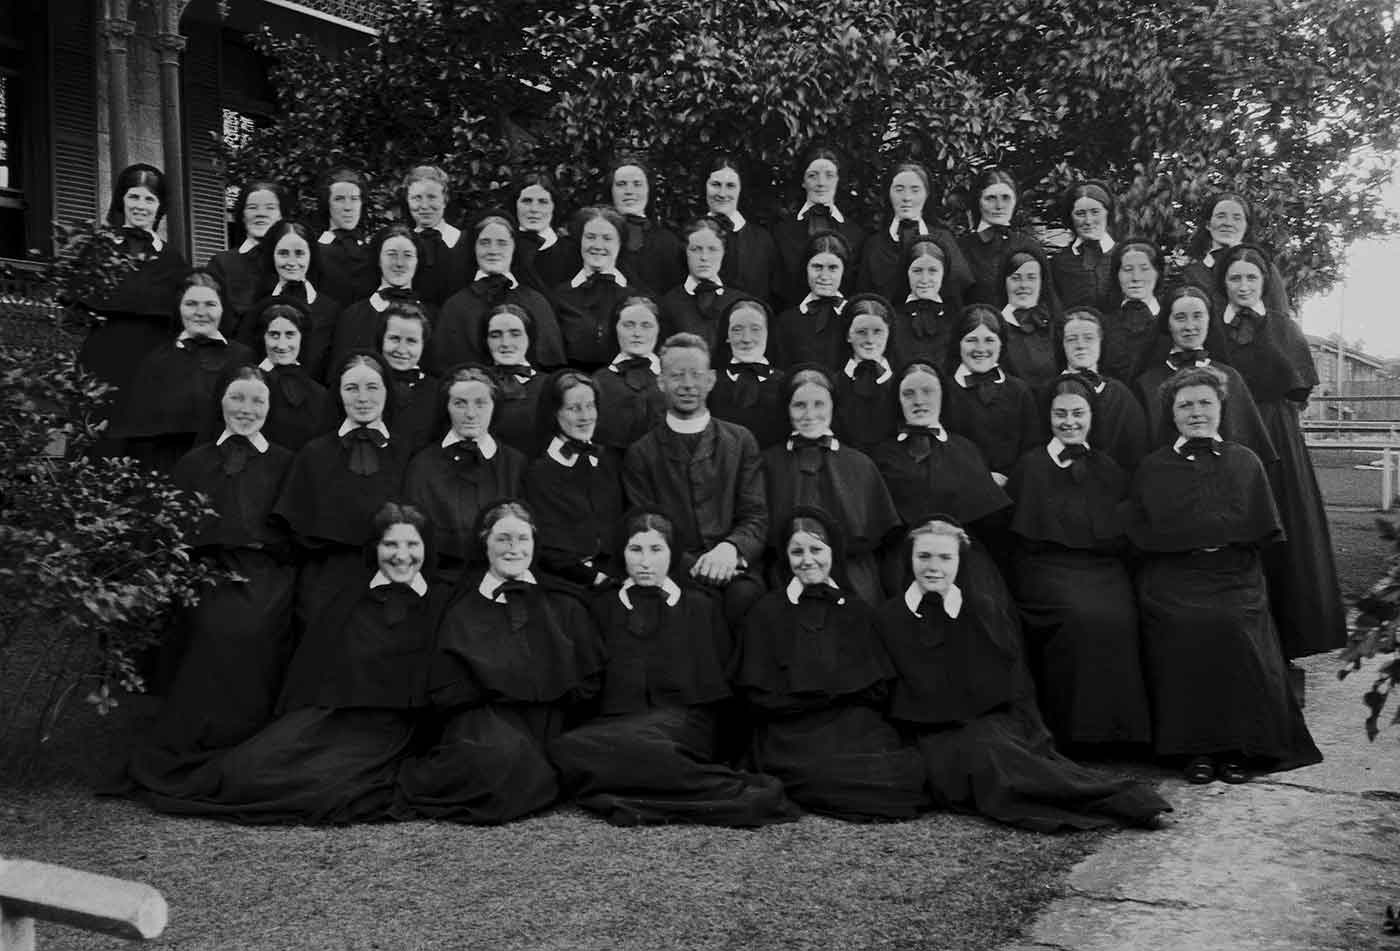 Black and white group portrait of women wearing a uniform of black gowns with white dresses. A priest sits in the centre towards the front.